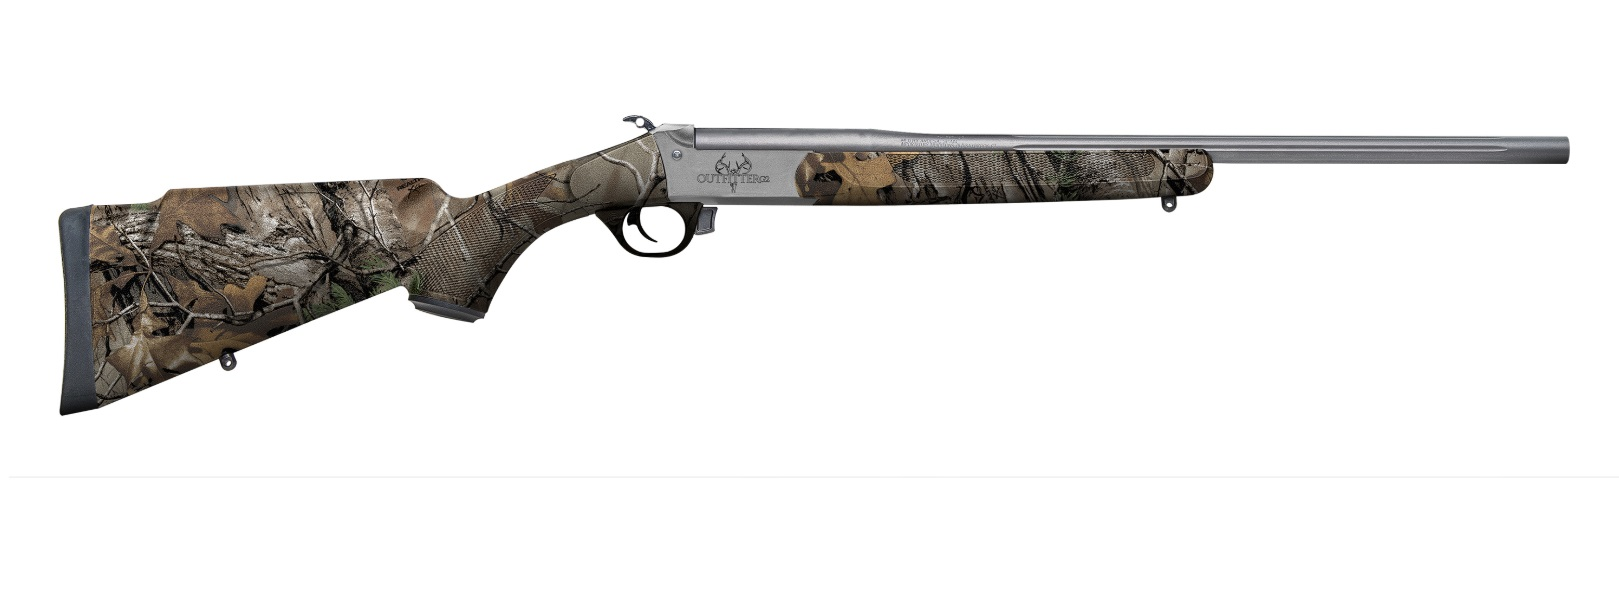 Traditions Outfitter G2 44 Magnum   44 Special